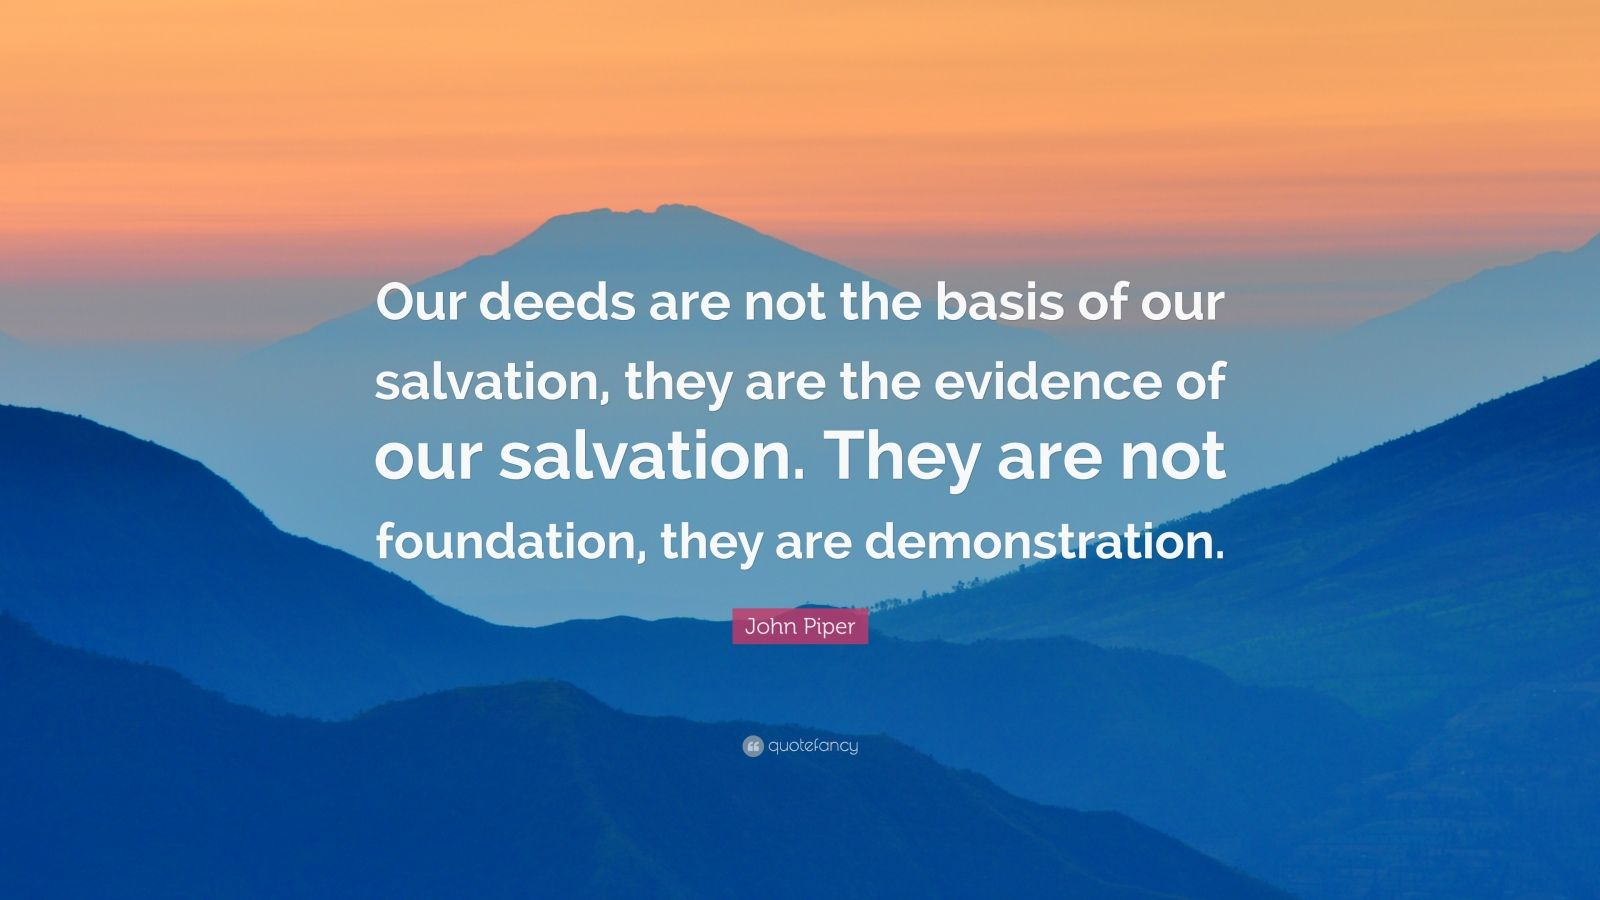 """John Piper Quote: """"Our deeds are not the basis of our salvation, they are the evidence of our salvation. They are not foundation, they are demonstration."""""""